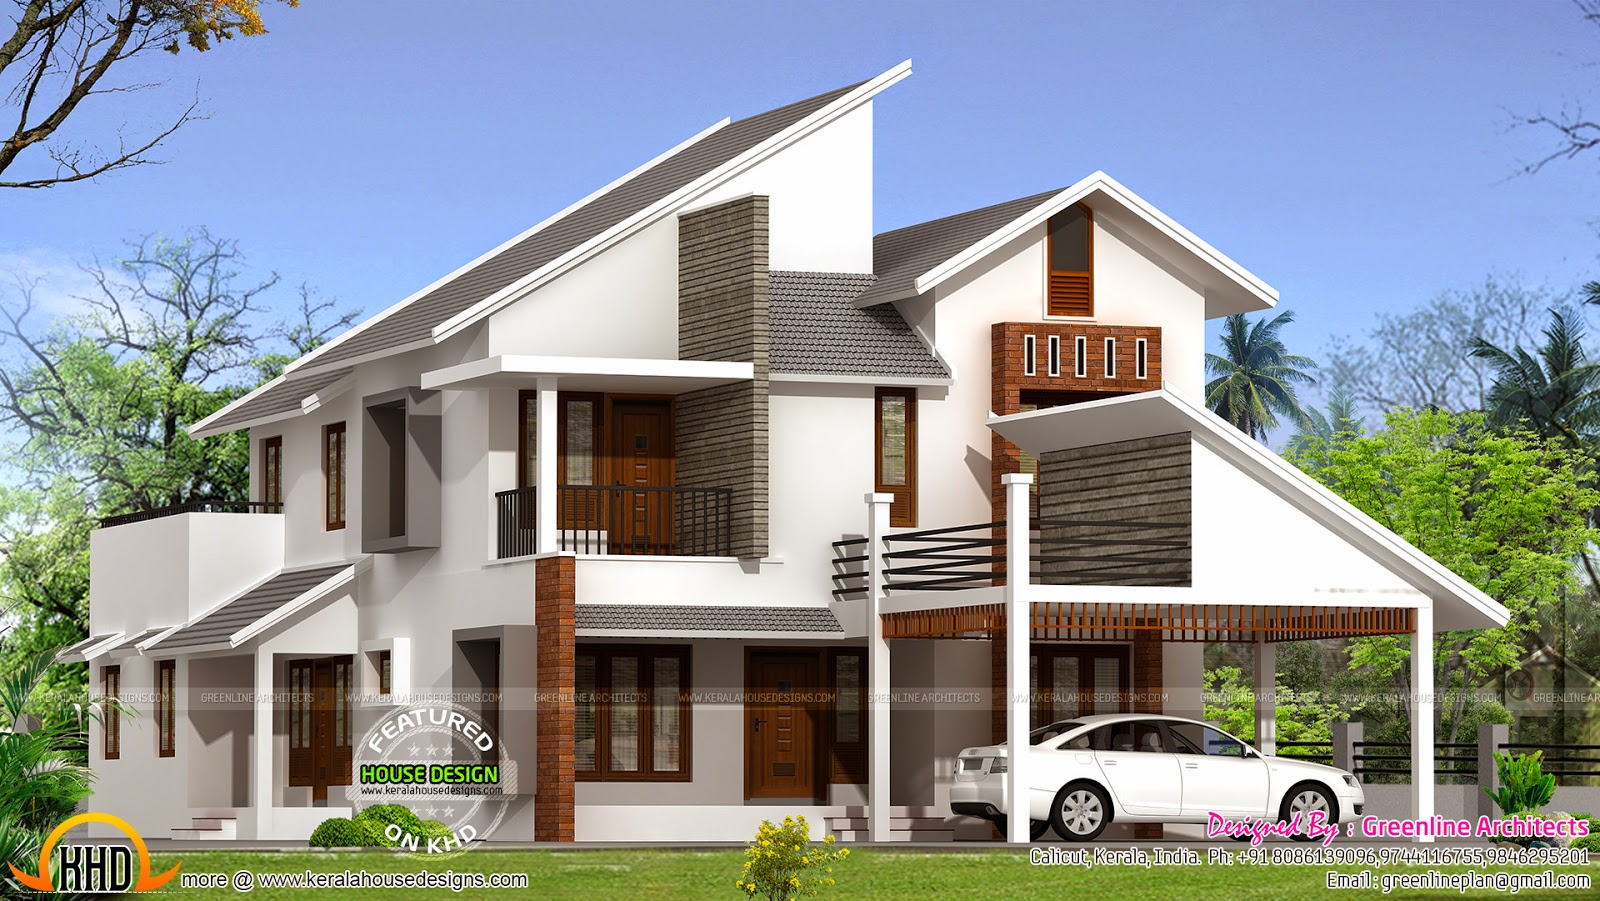 New modern house plan kerala home design and floor plans for Modern house styles